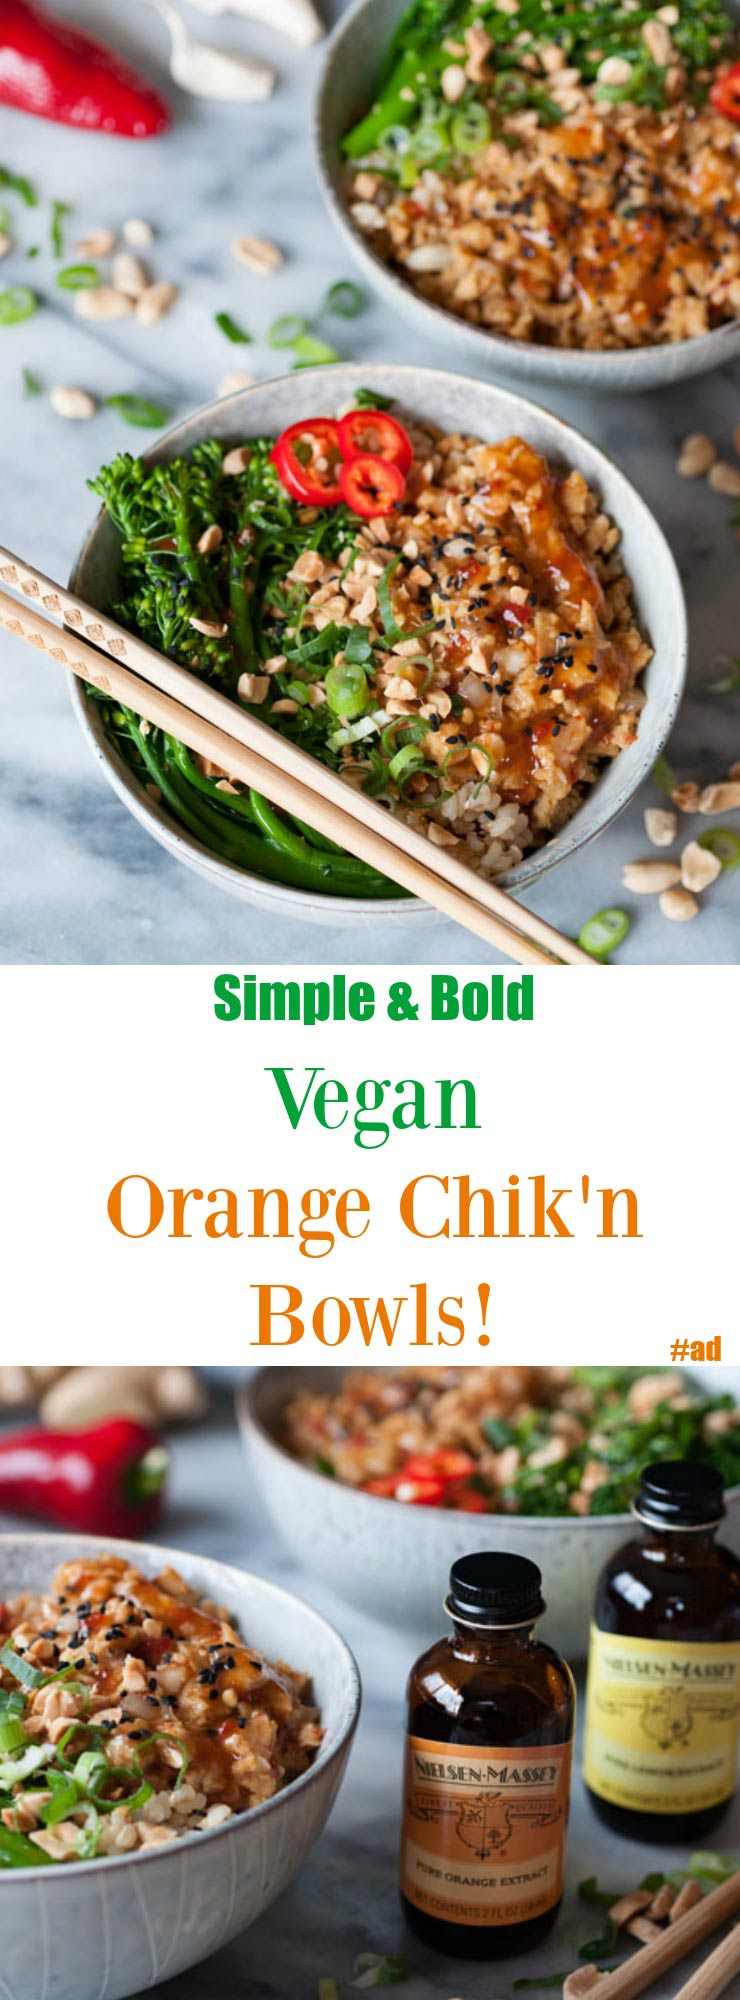 Spicy Vegan Orange Chik'n Bowls! A homemade orange sauce made with Nielsen-Massey extracts and seitan for the chik'n. An easy and delicious dinner that's refined sugar-free